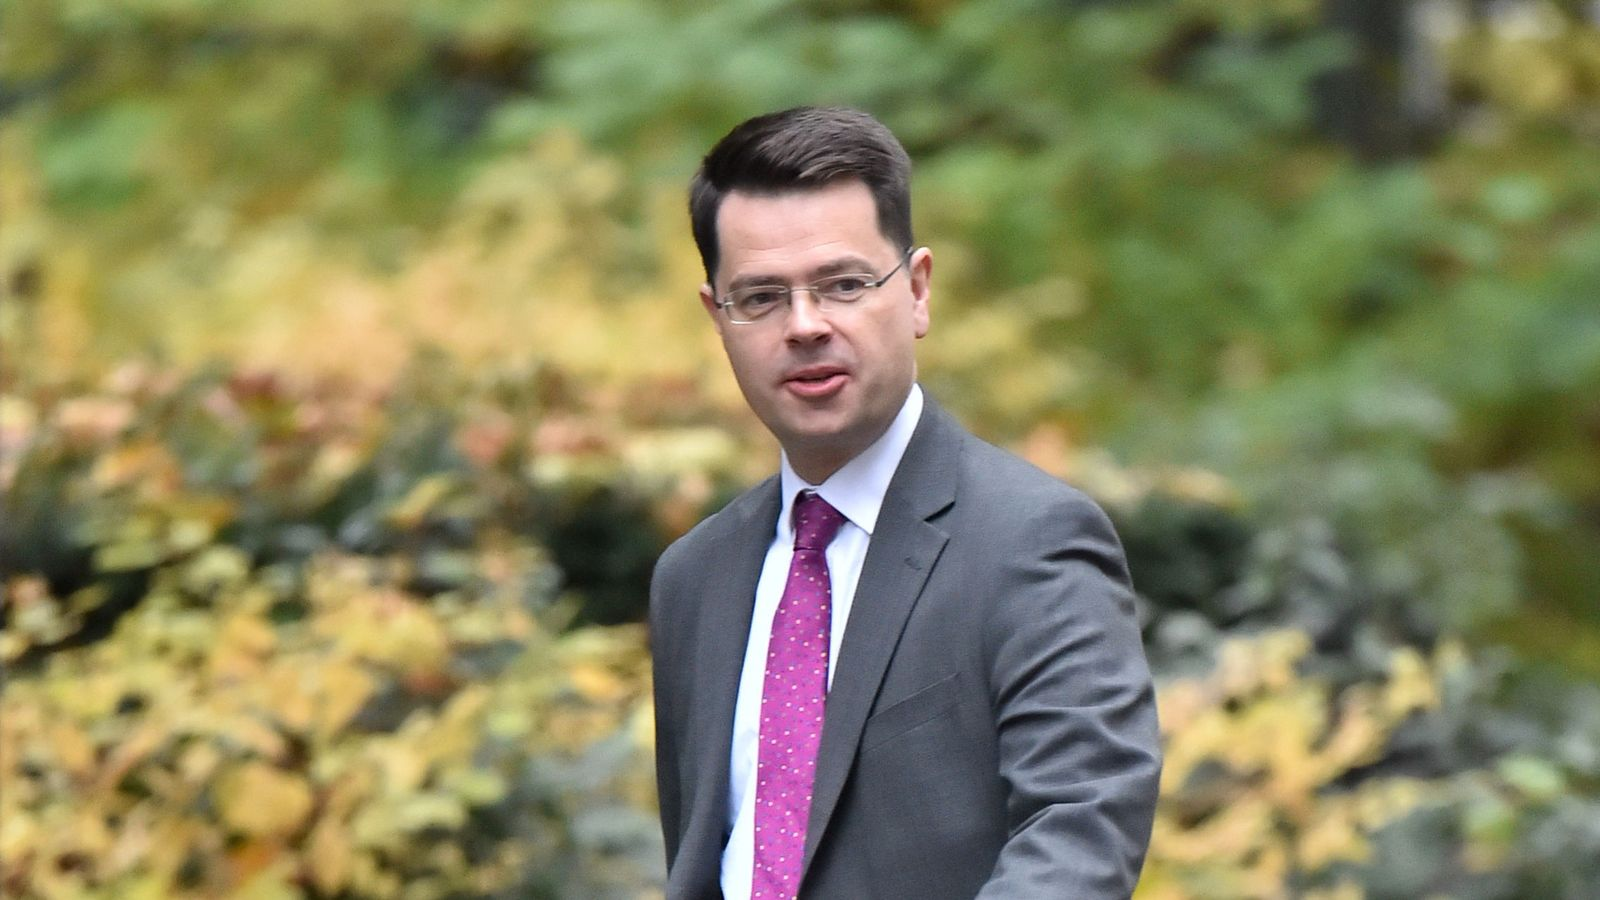 James Brokenshire calls for end to lung cancer stigma as he confirms he has disease